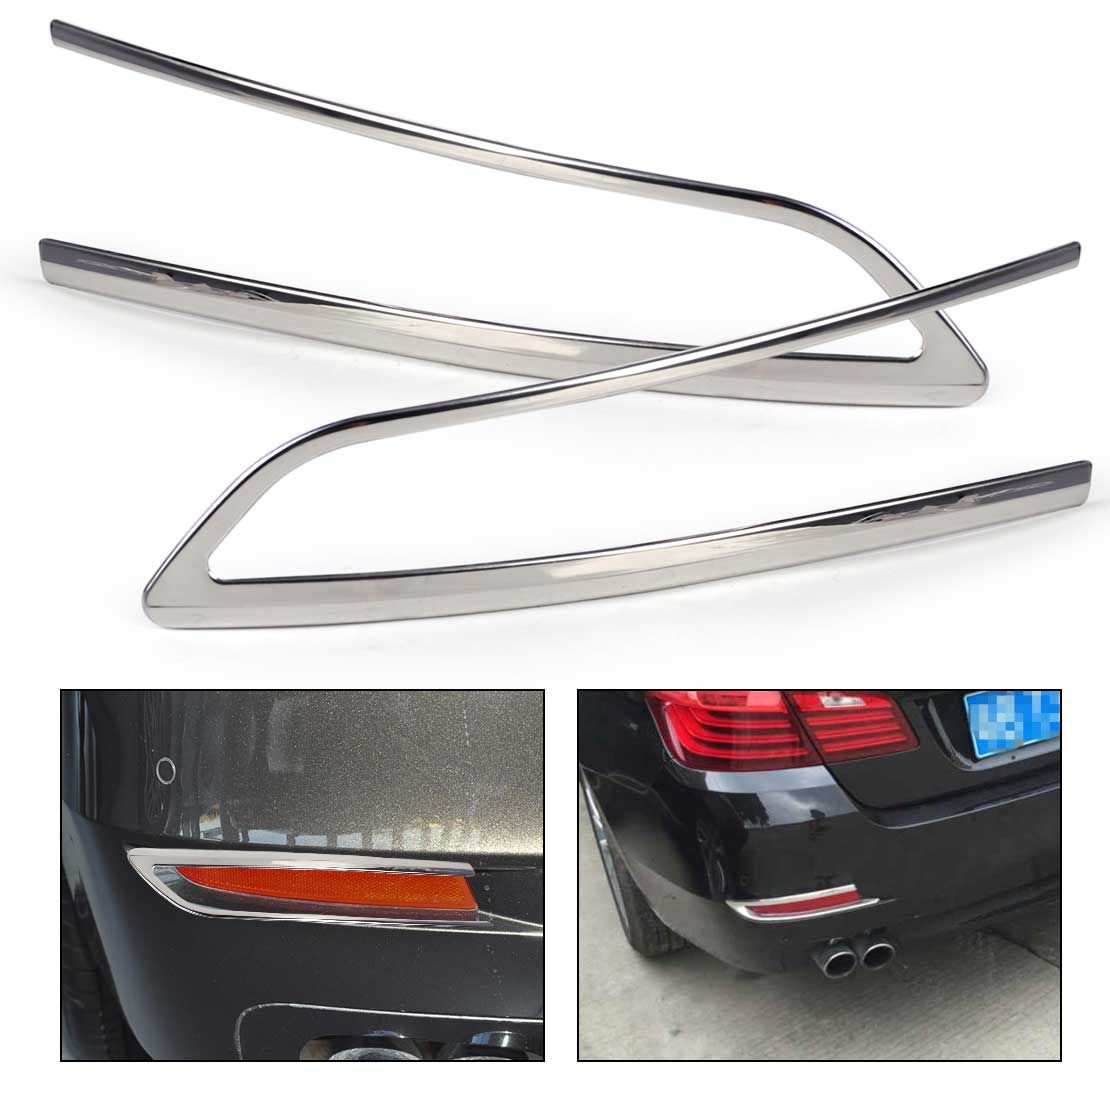 487a9da249a2 beler Car Styling New Pair ABS Chrome Rear Fog Light Lamp Cover Trim fit  for BMW